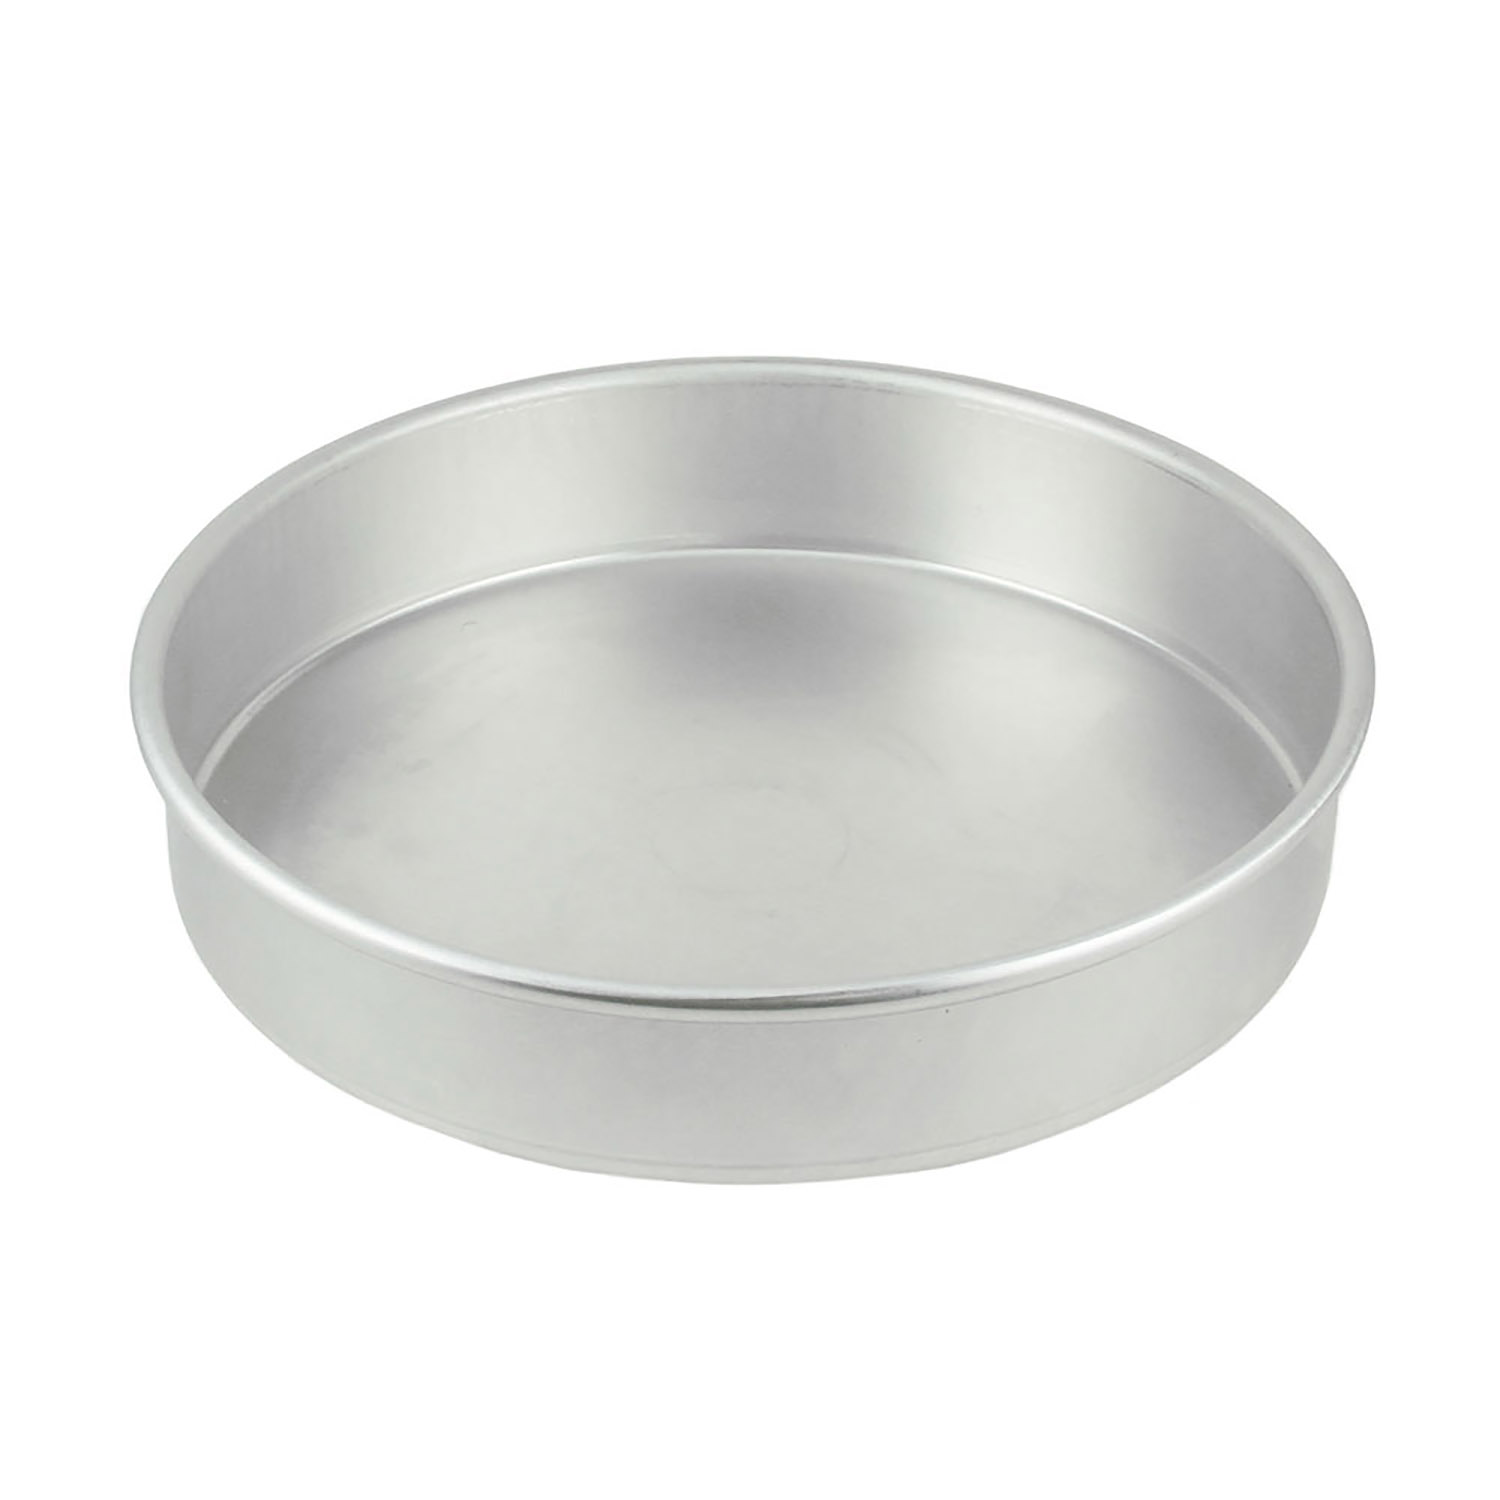 "10 x 2"" Magic Line Round Cake Pan"